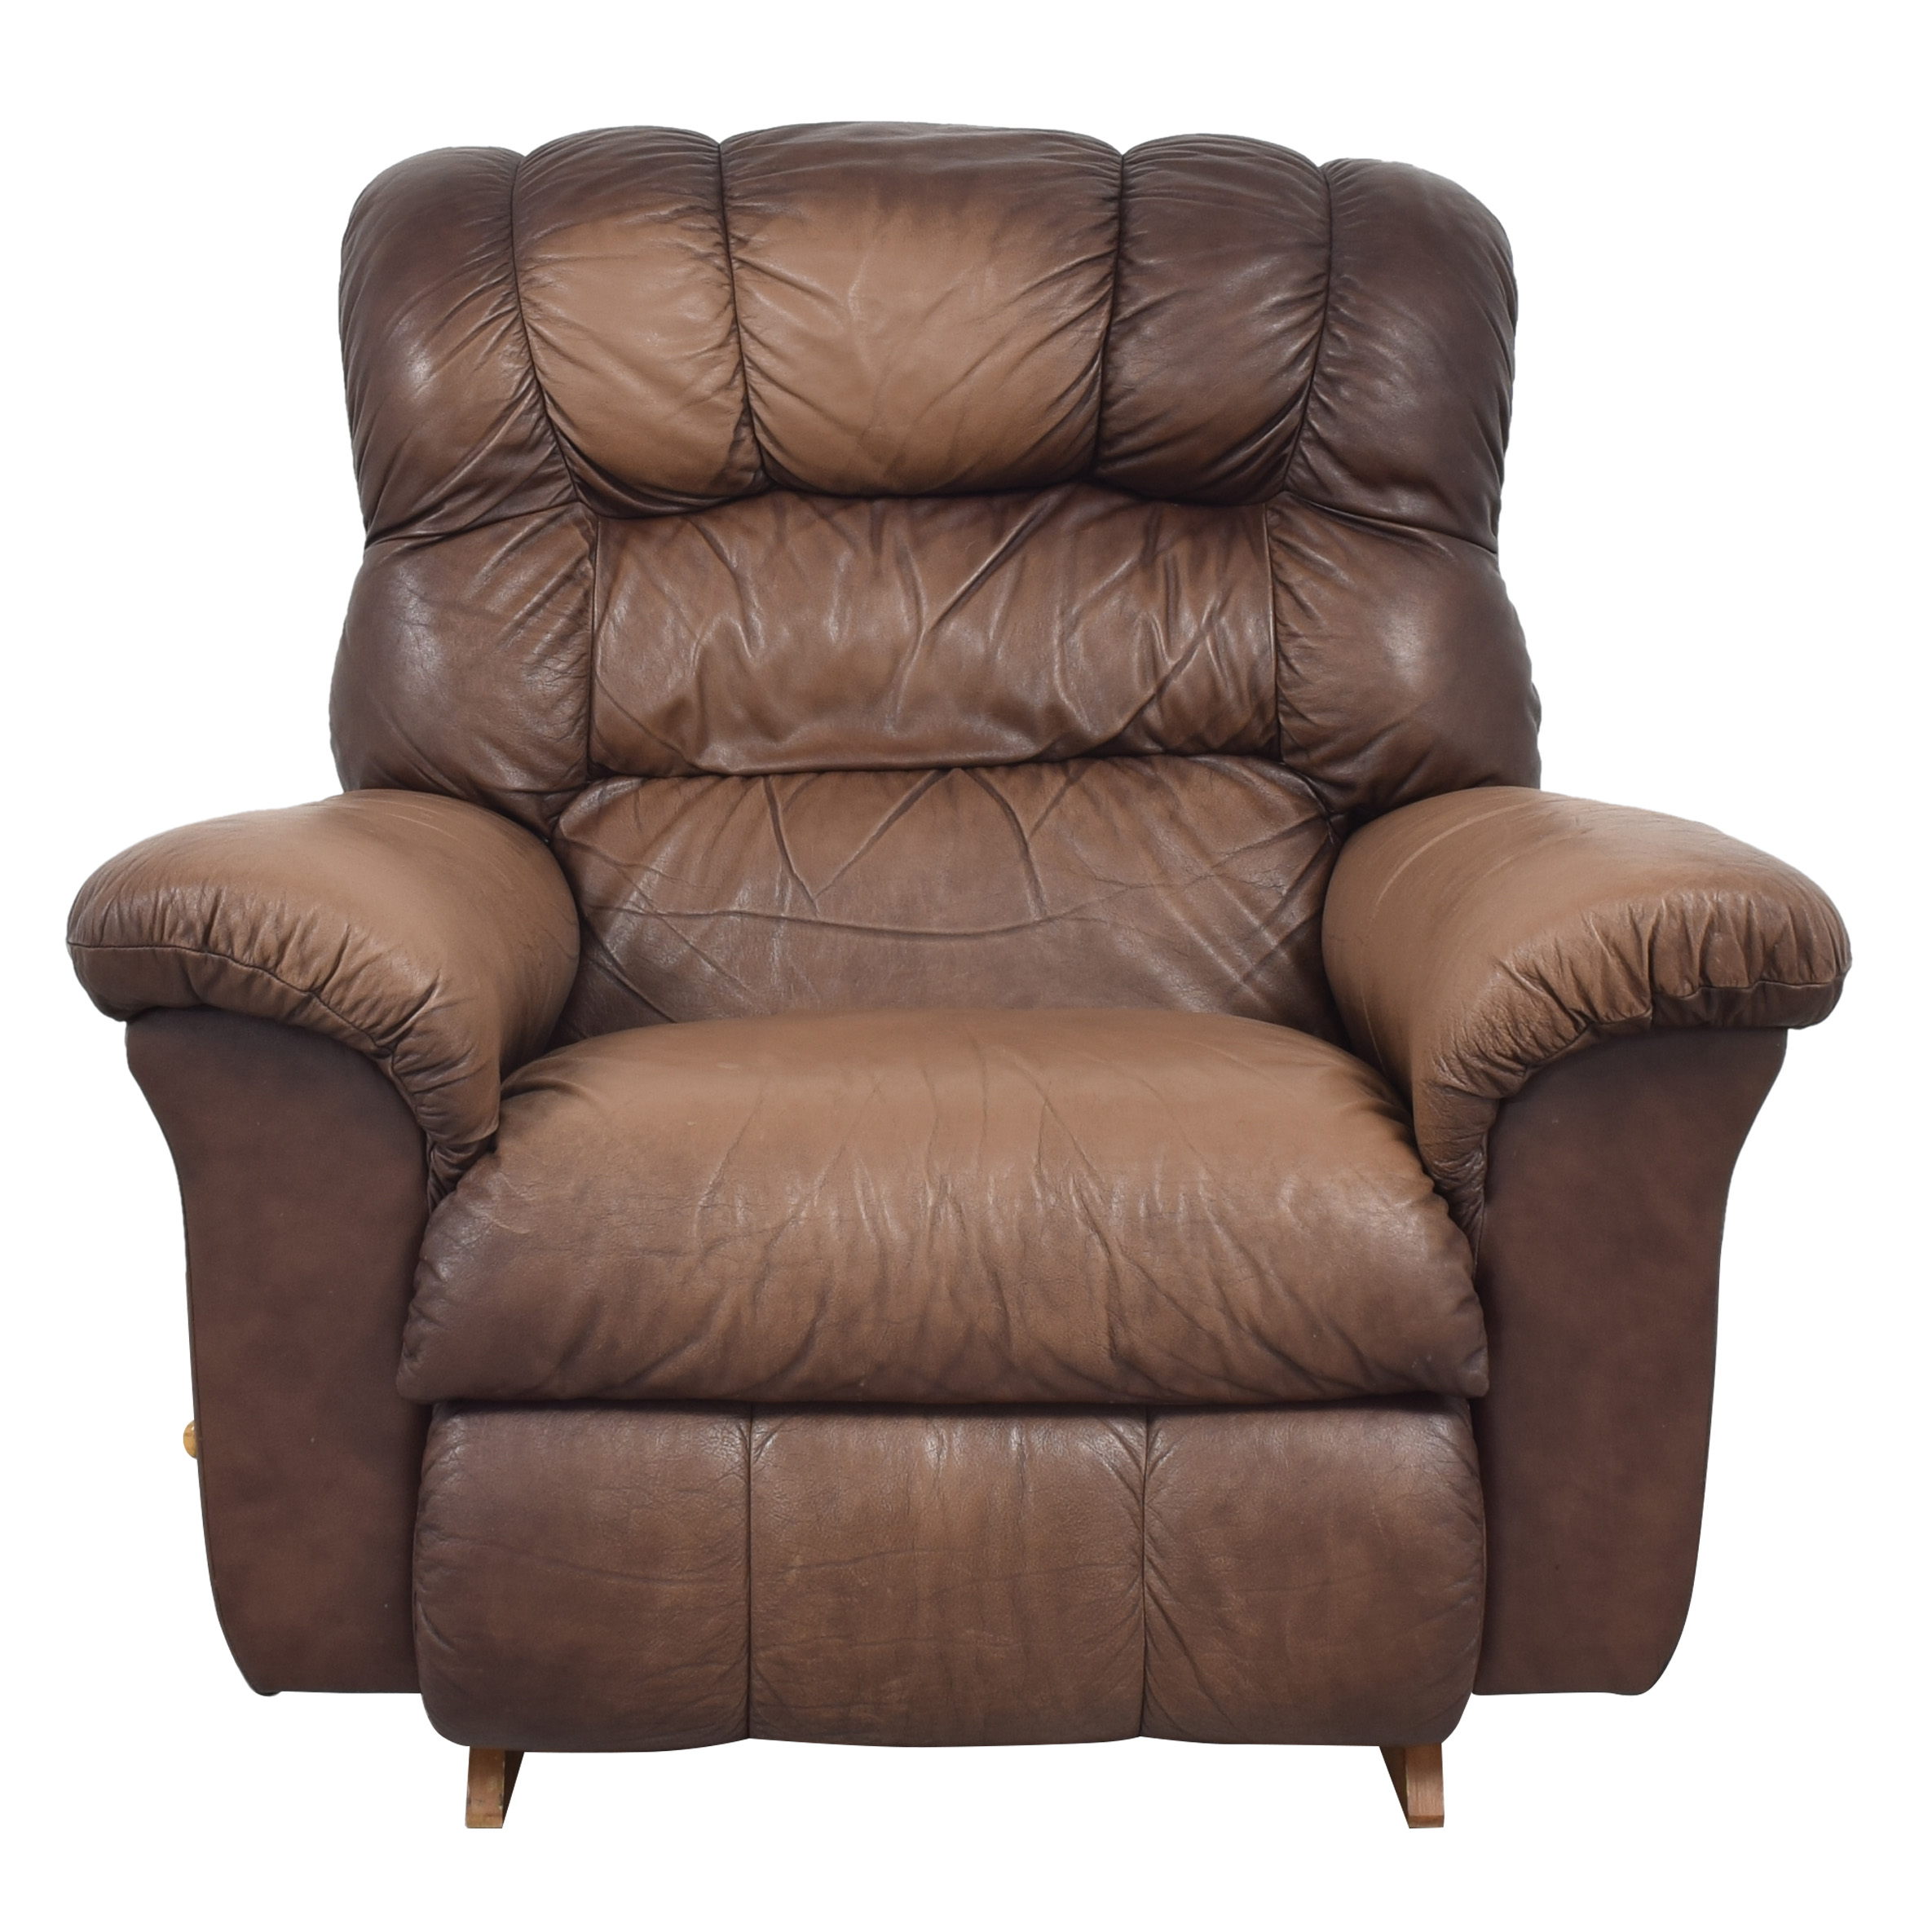 La-Z-Boy La-Z Boy Recliner coupon